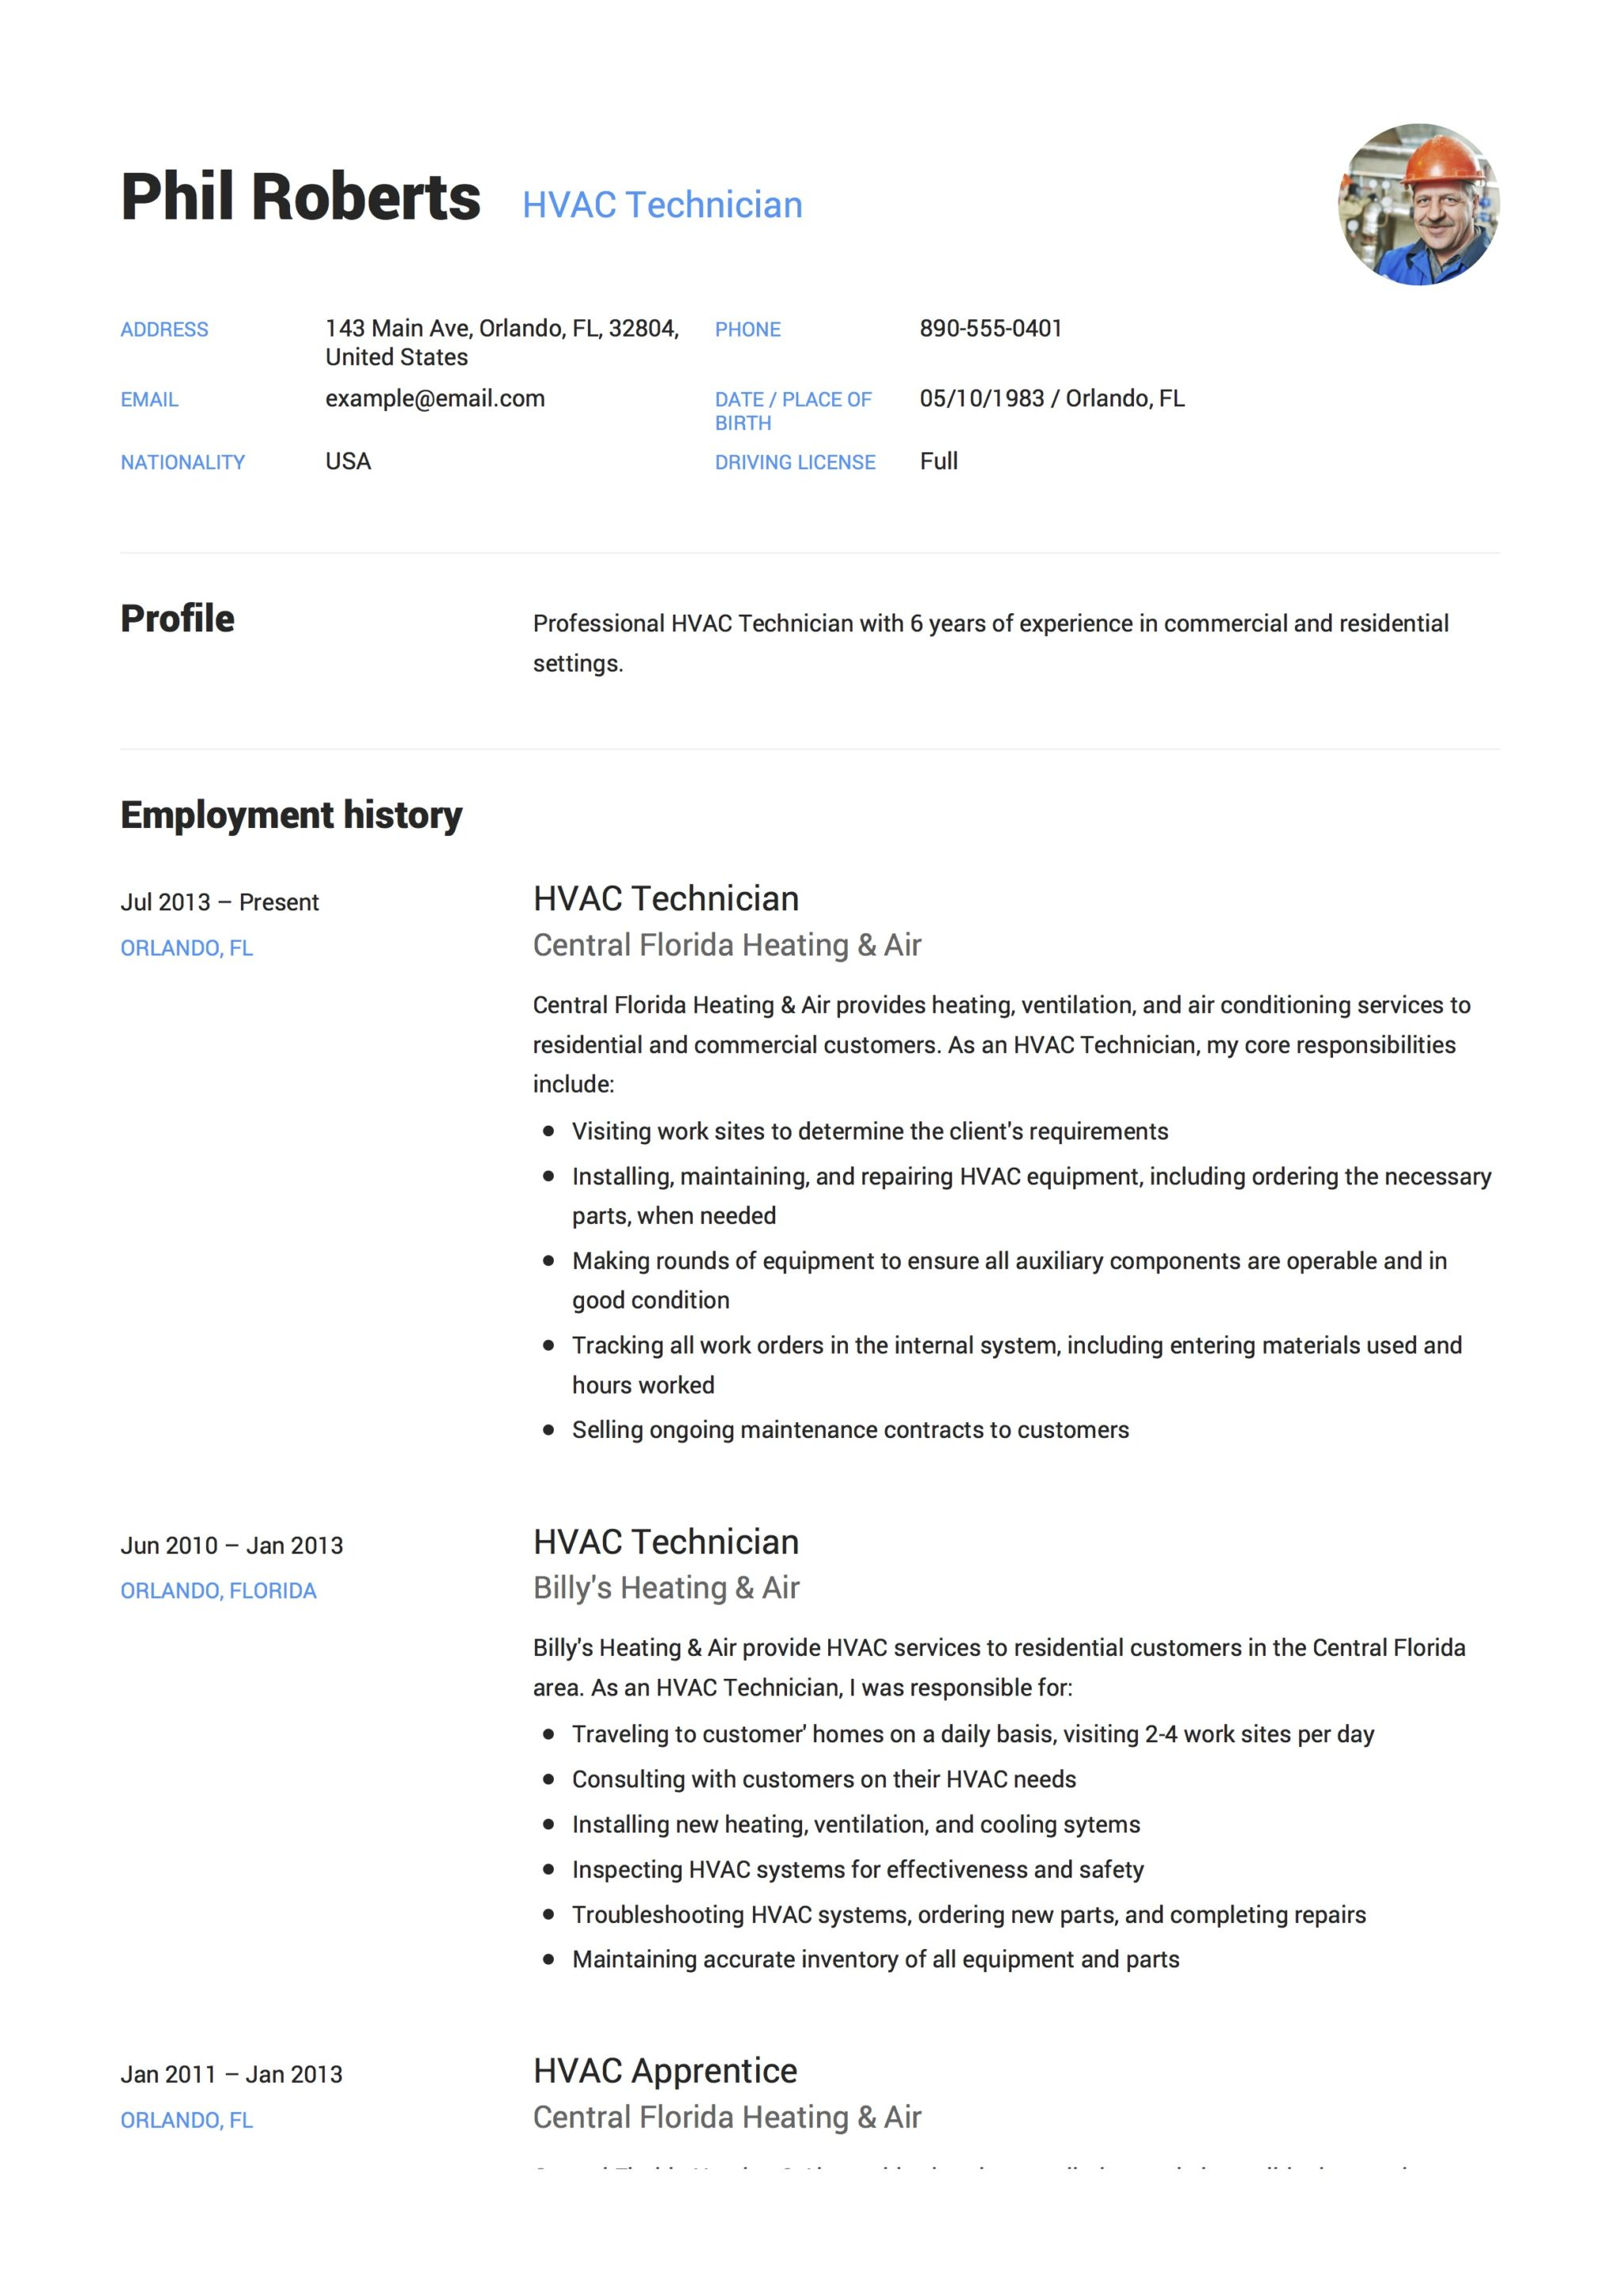 HVAC Technician Senior Resume Sample